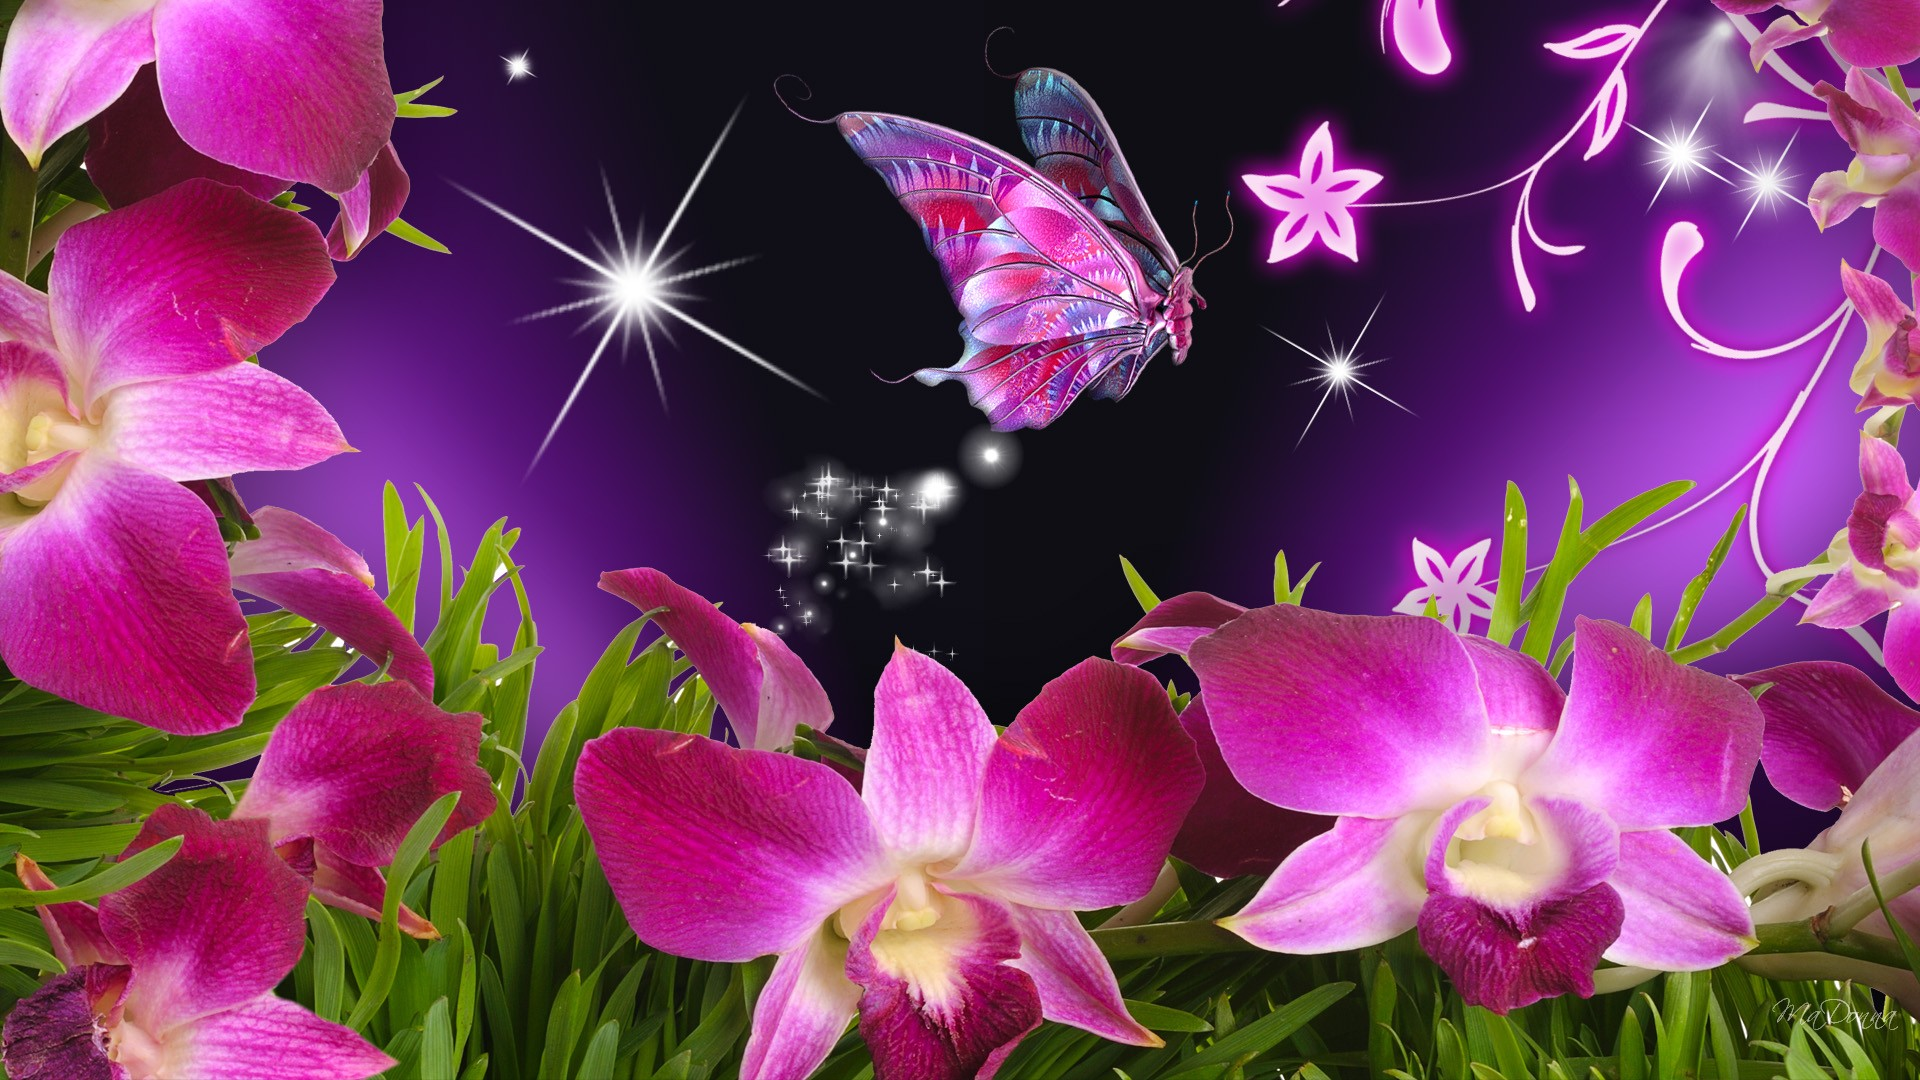 Download-Butterflies-And-Flowers-Vector-Butterfly-Orchid-cakepins-com-wallpaper-wpc5804391